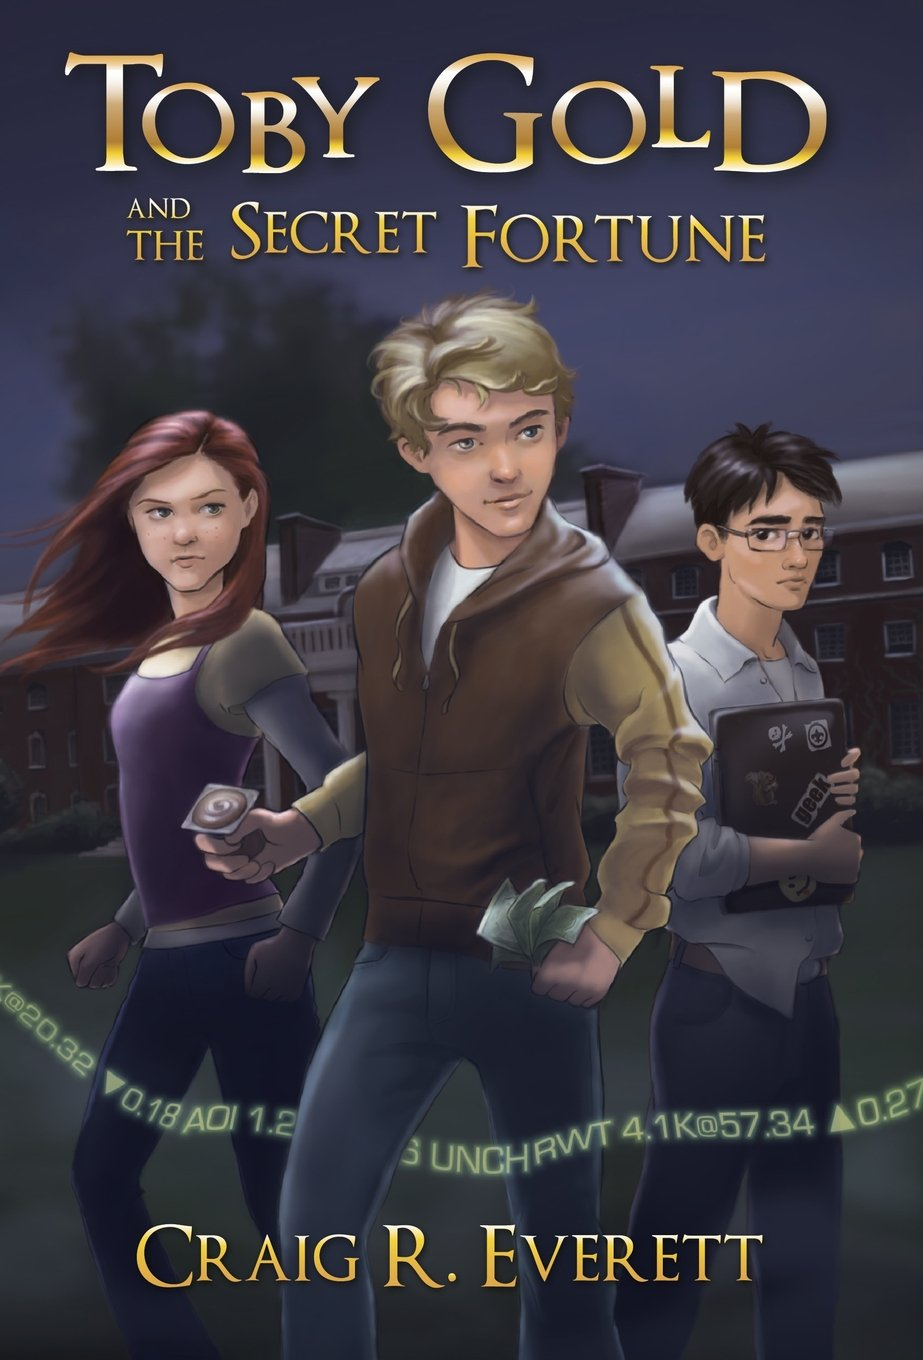 Toby Gold and the Secret Fortune